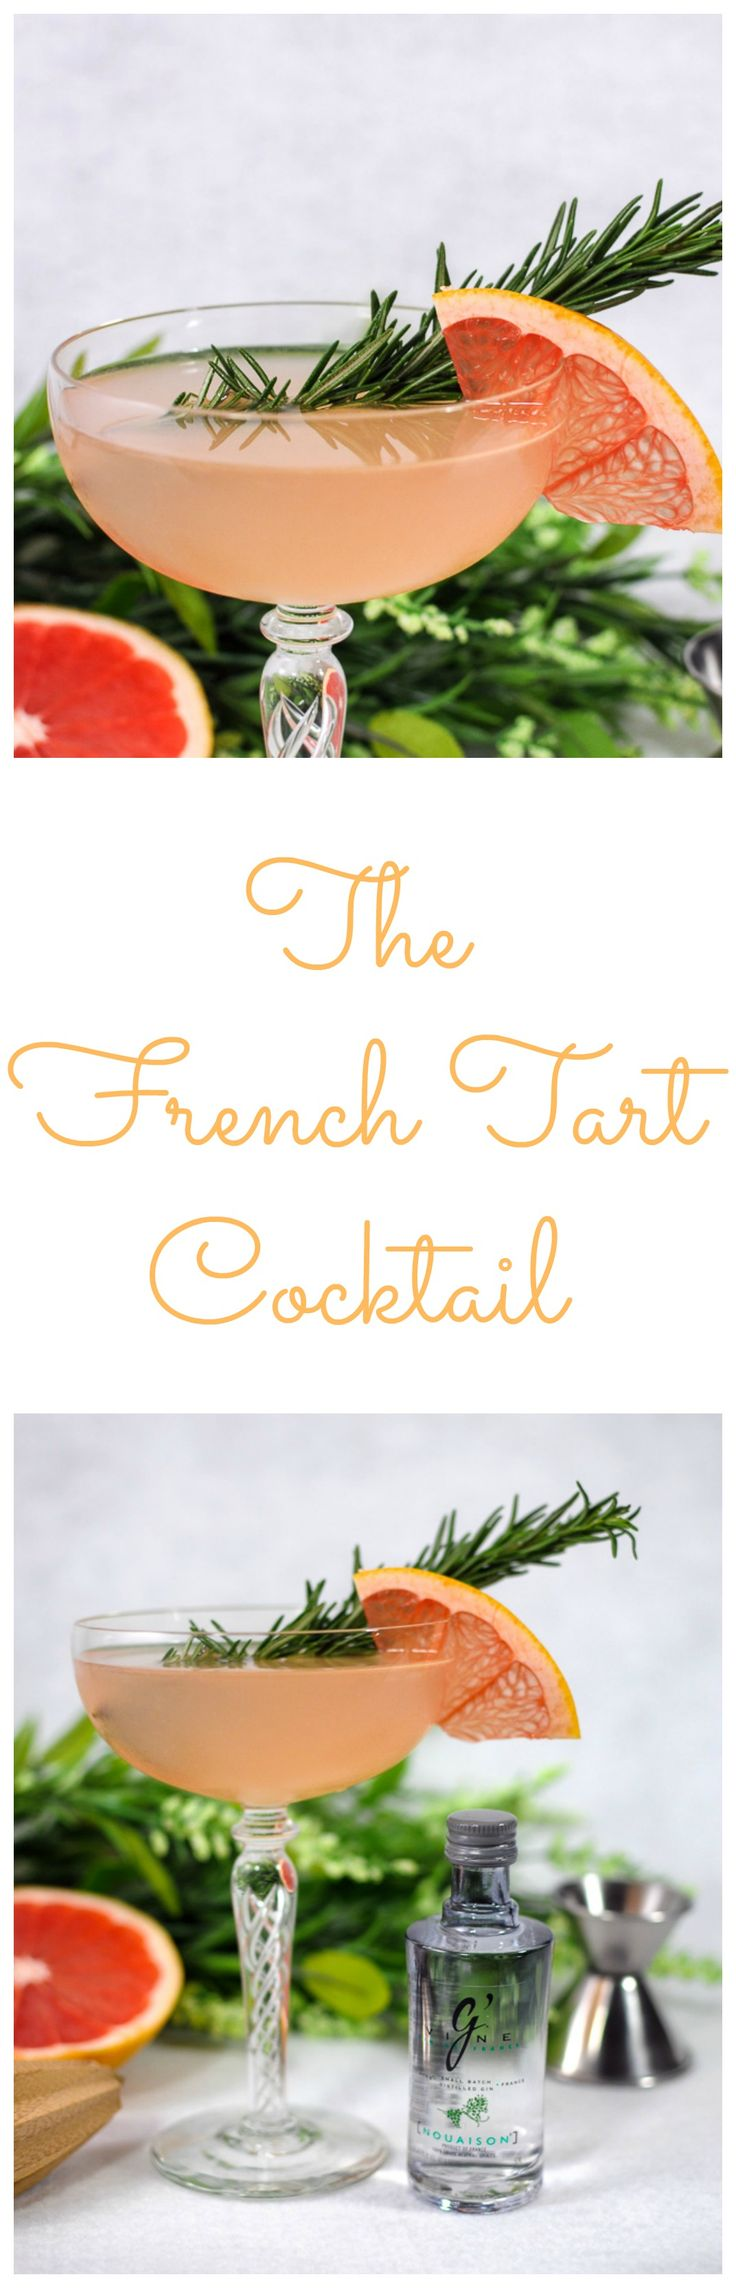 The French Tart cocktail - gin, rosemary simple syrup, grapefruit juice, lemon juice and sage bitters drink, recipe, fall, winter